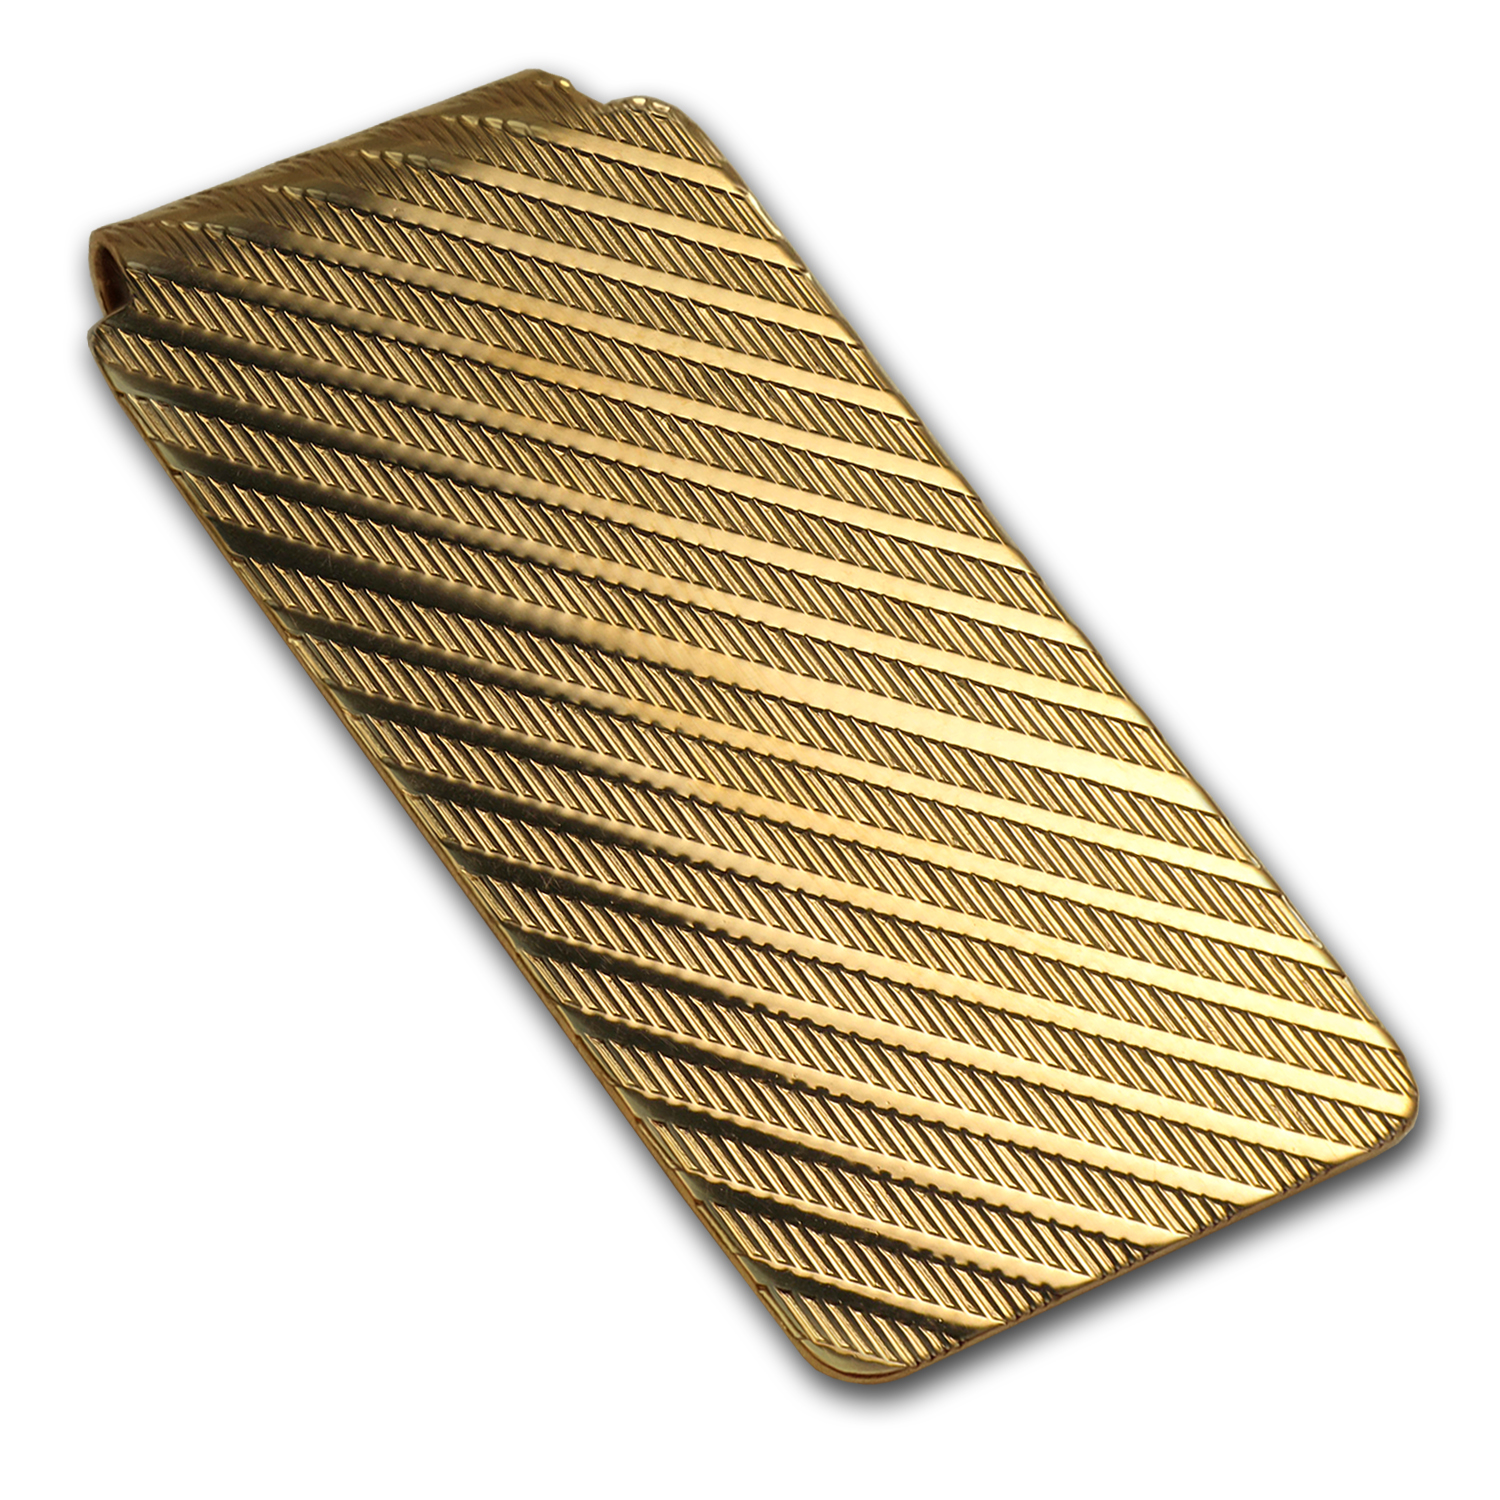 14K Gold Textured Money Clip